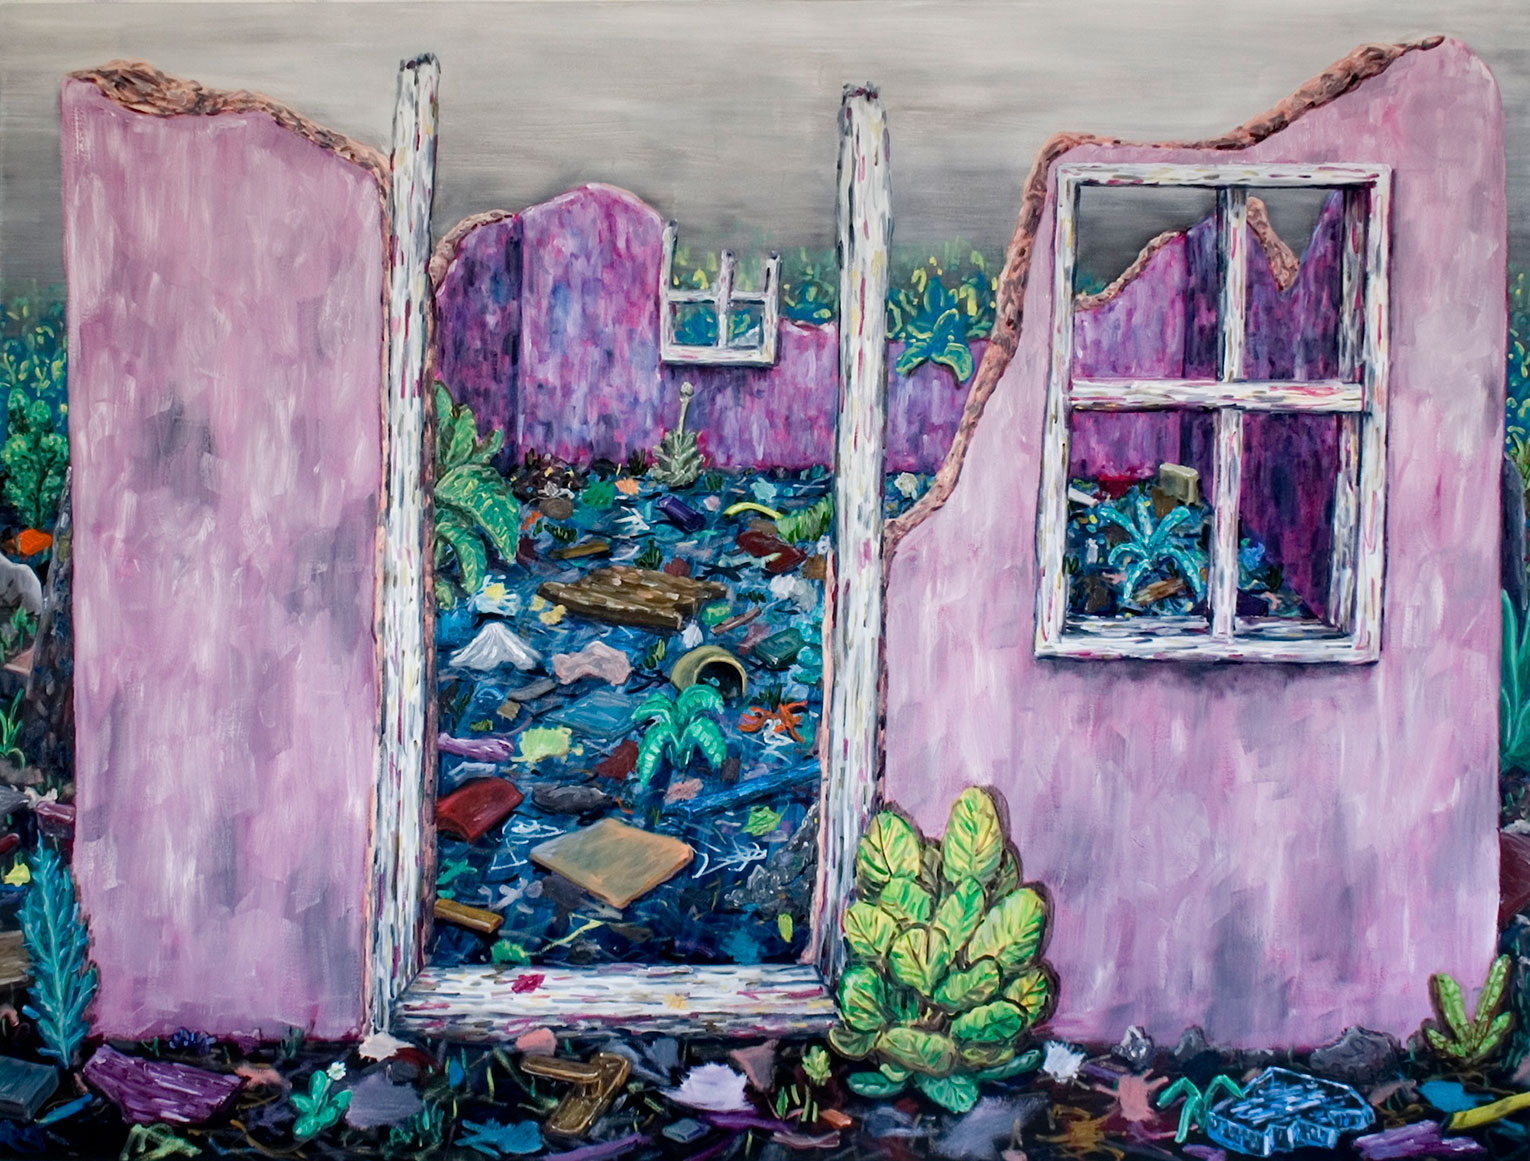 <b>Title:&nbsp;</b>Pink Ruin<br /><b>Year:&nbsp;</b>2010<br /><b>Medium:&nbsp;</b>Oil on canvas<br /><b>Size:&nbsp;</b>160 x 210 cm